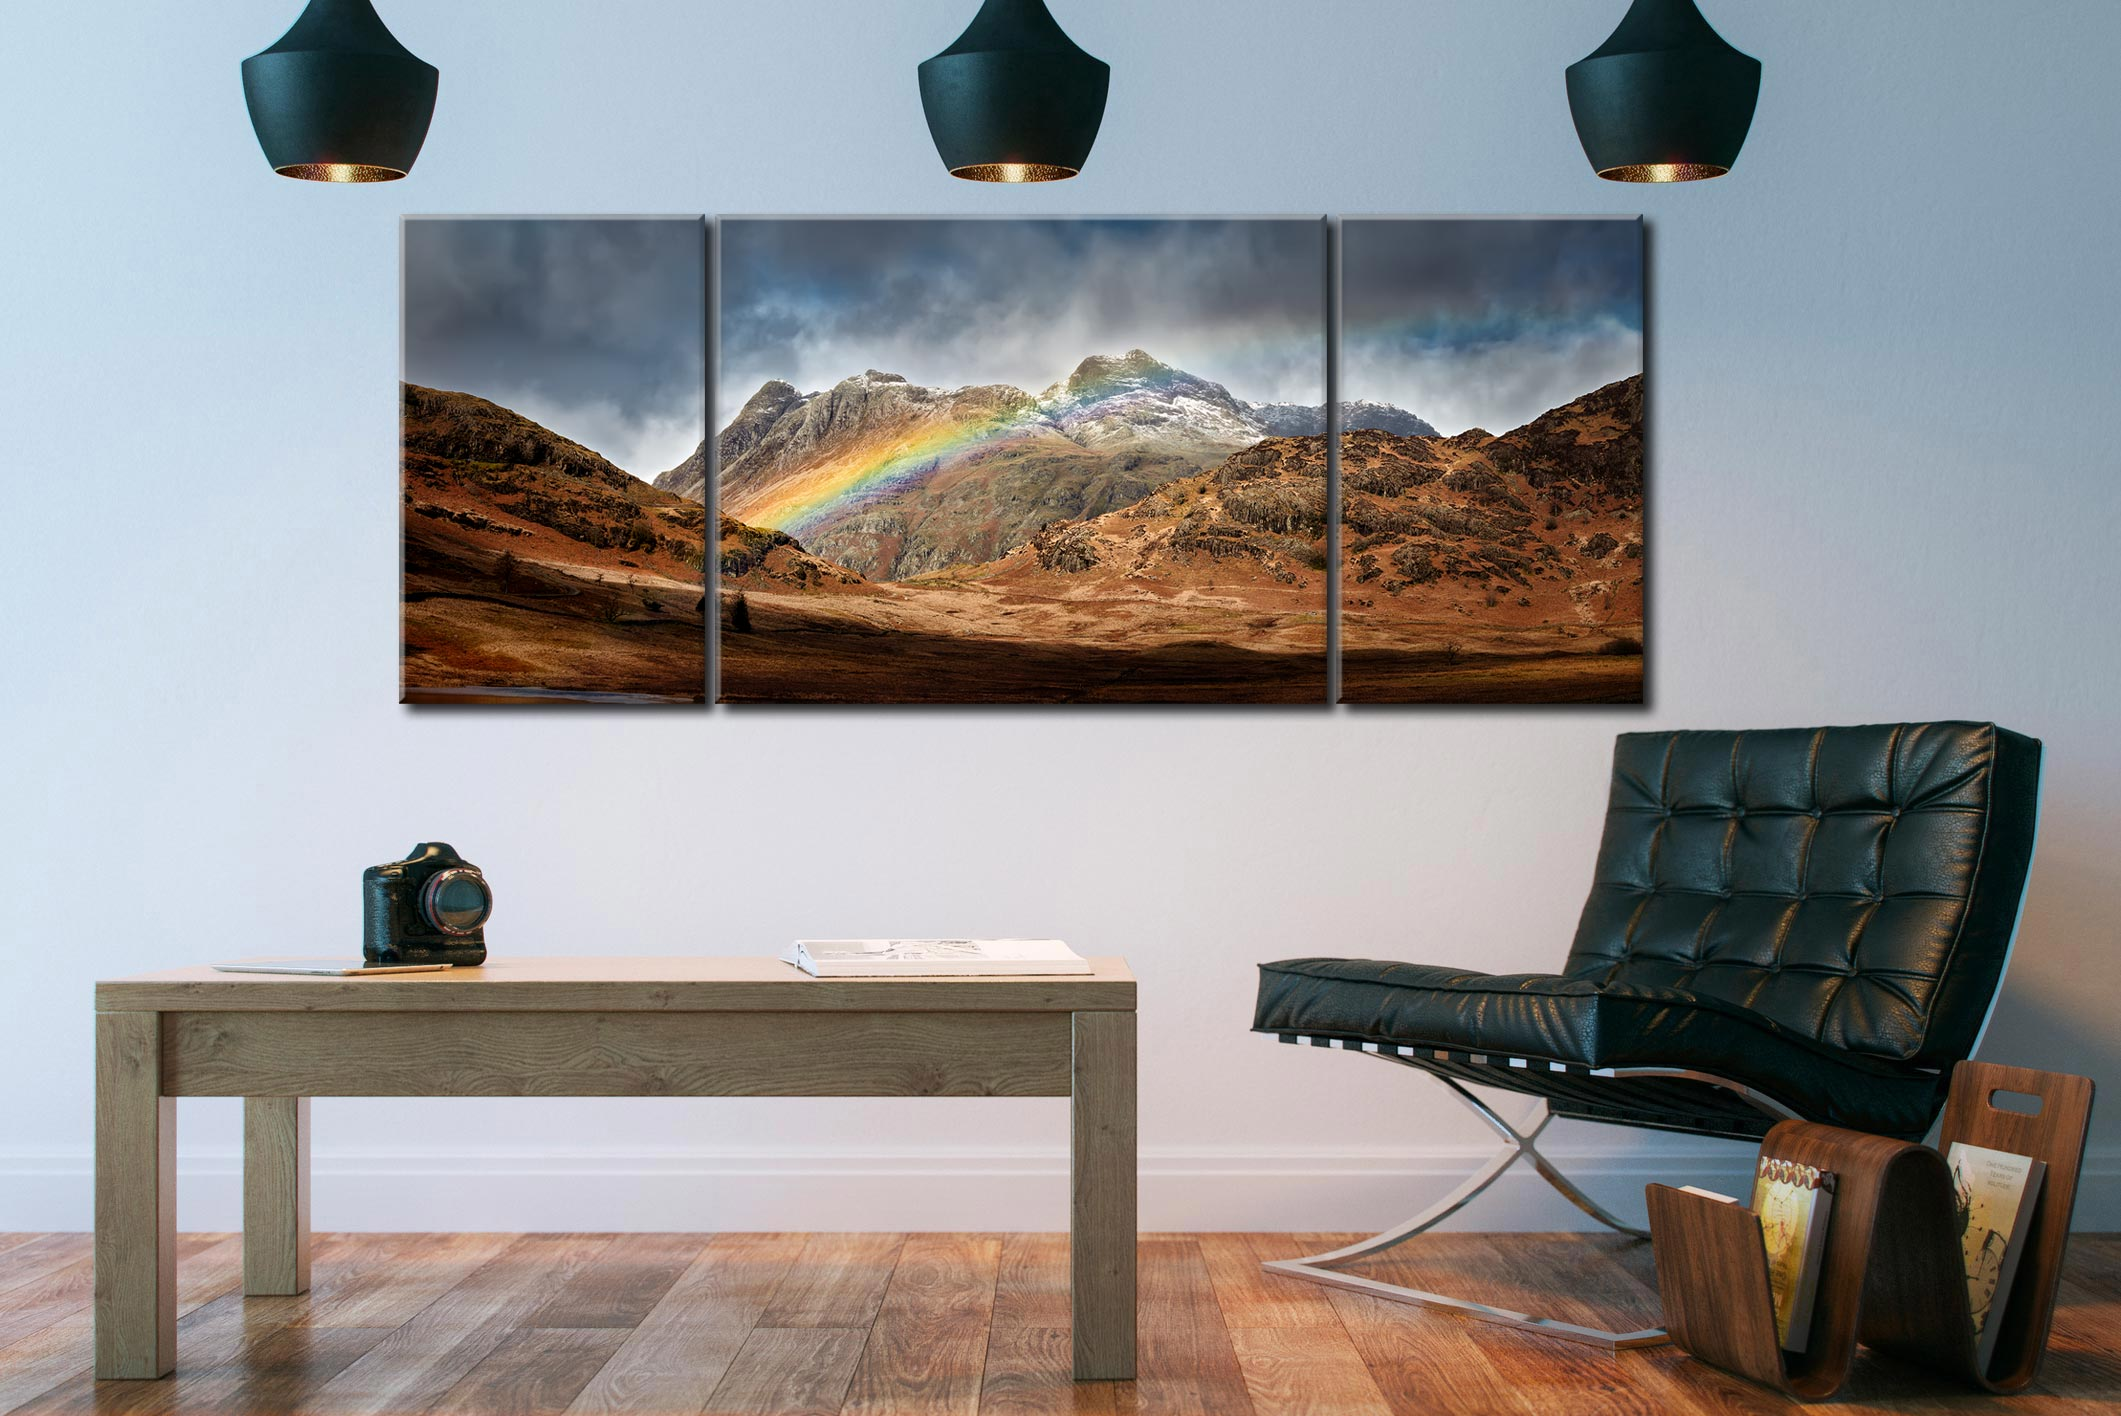 Langdale Pikes Rainbow - 3 Panel Canvas on Wall